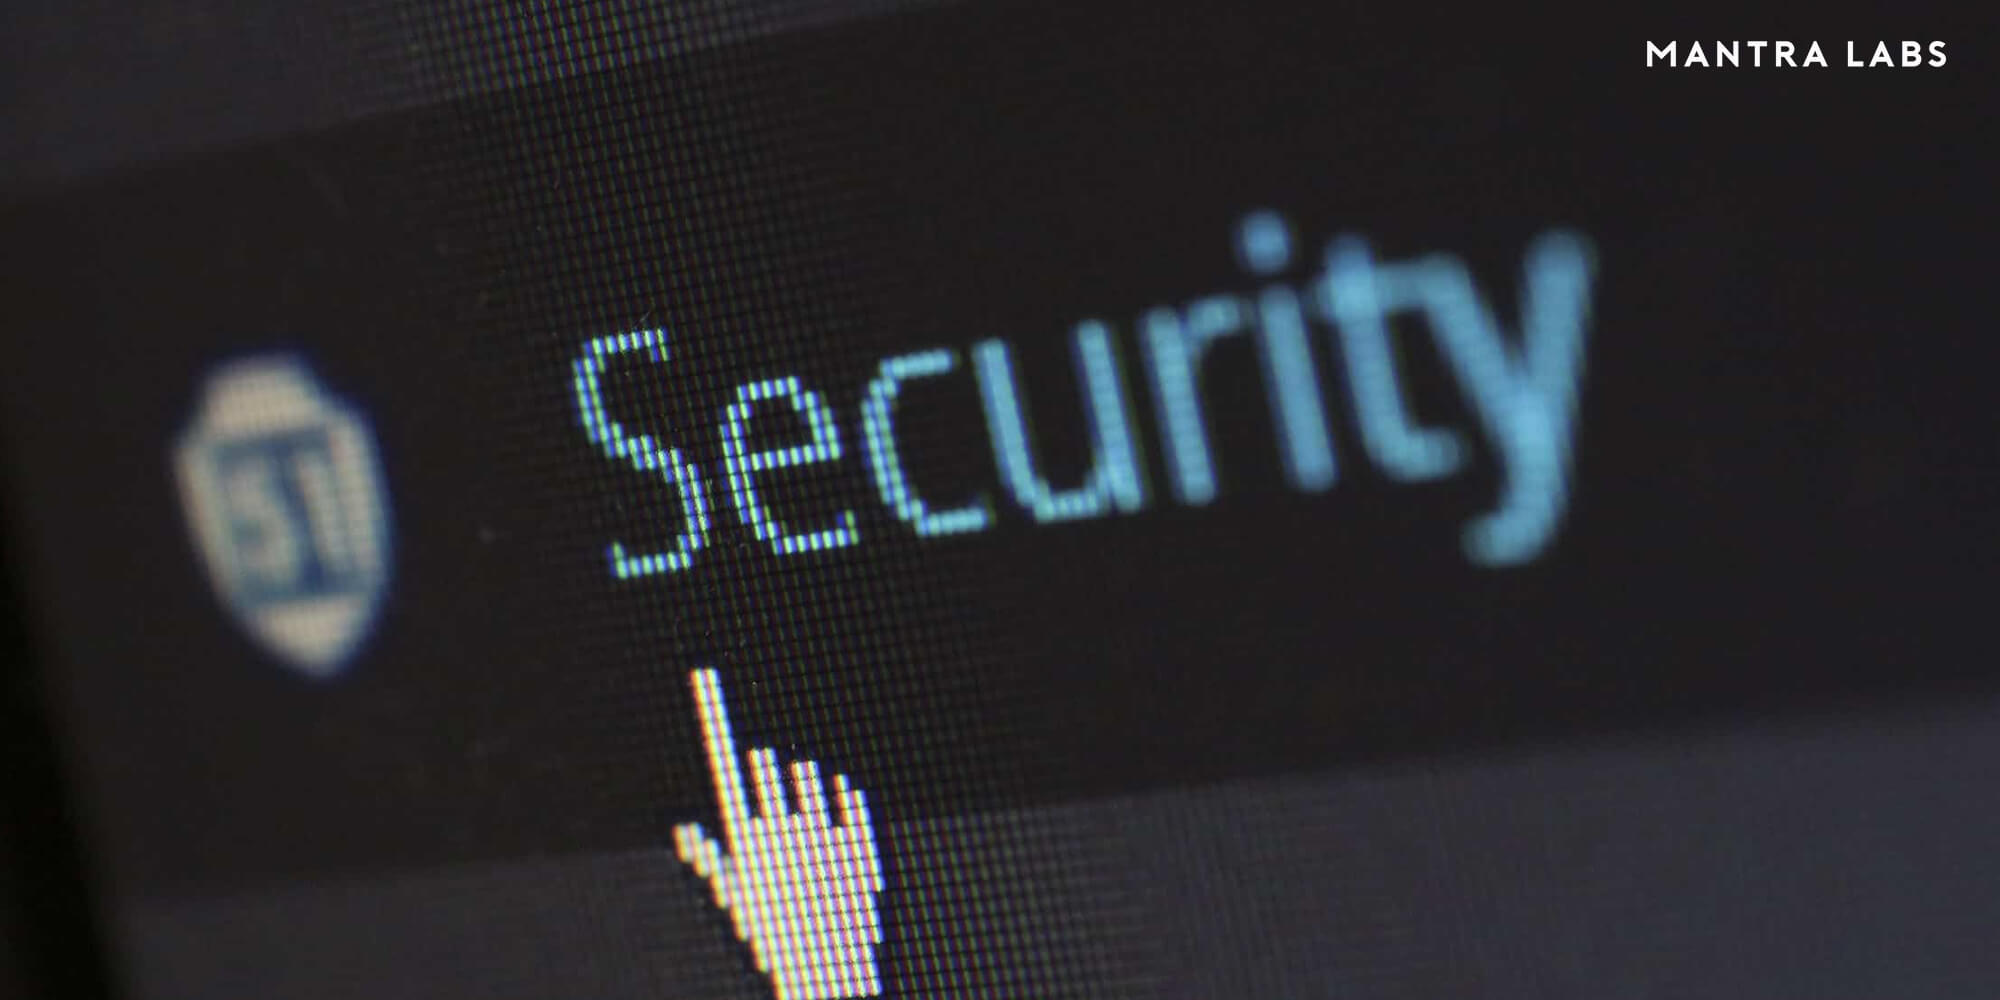 Web Application Security Testing - Part 1 - Mantra Labs